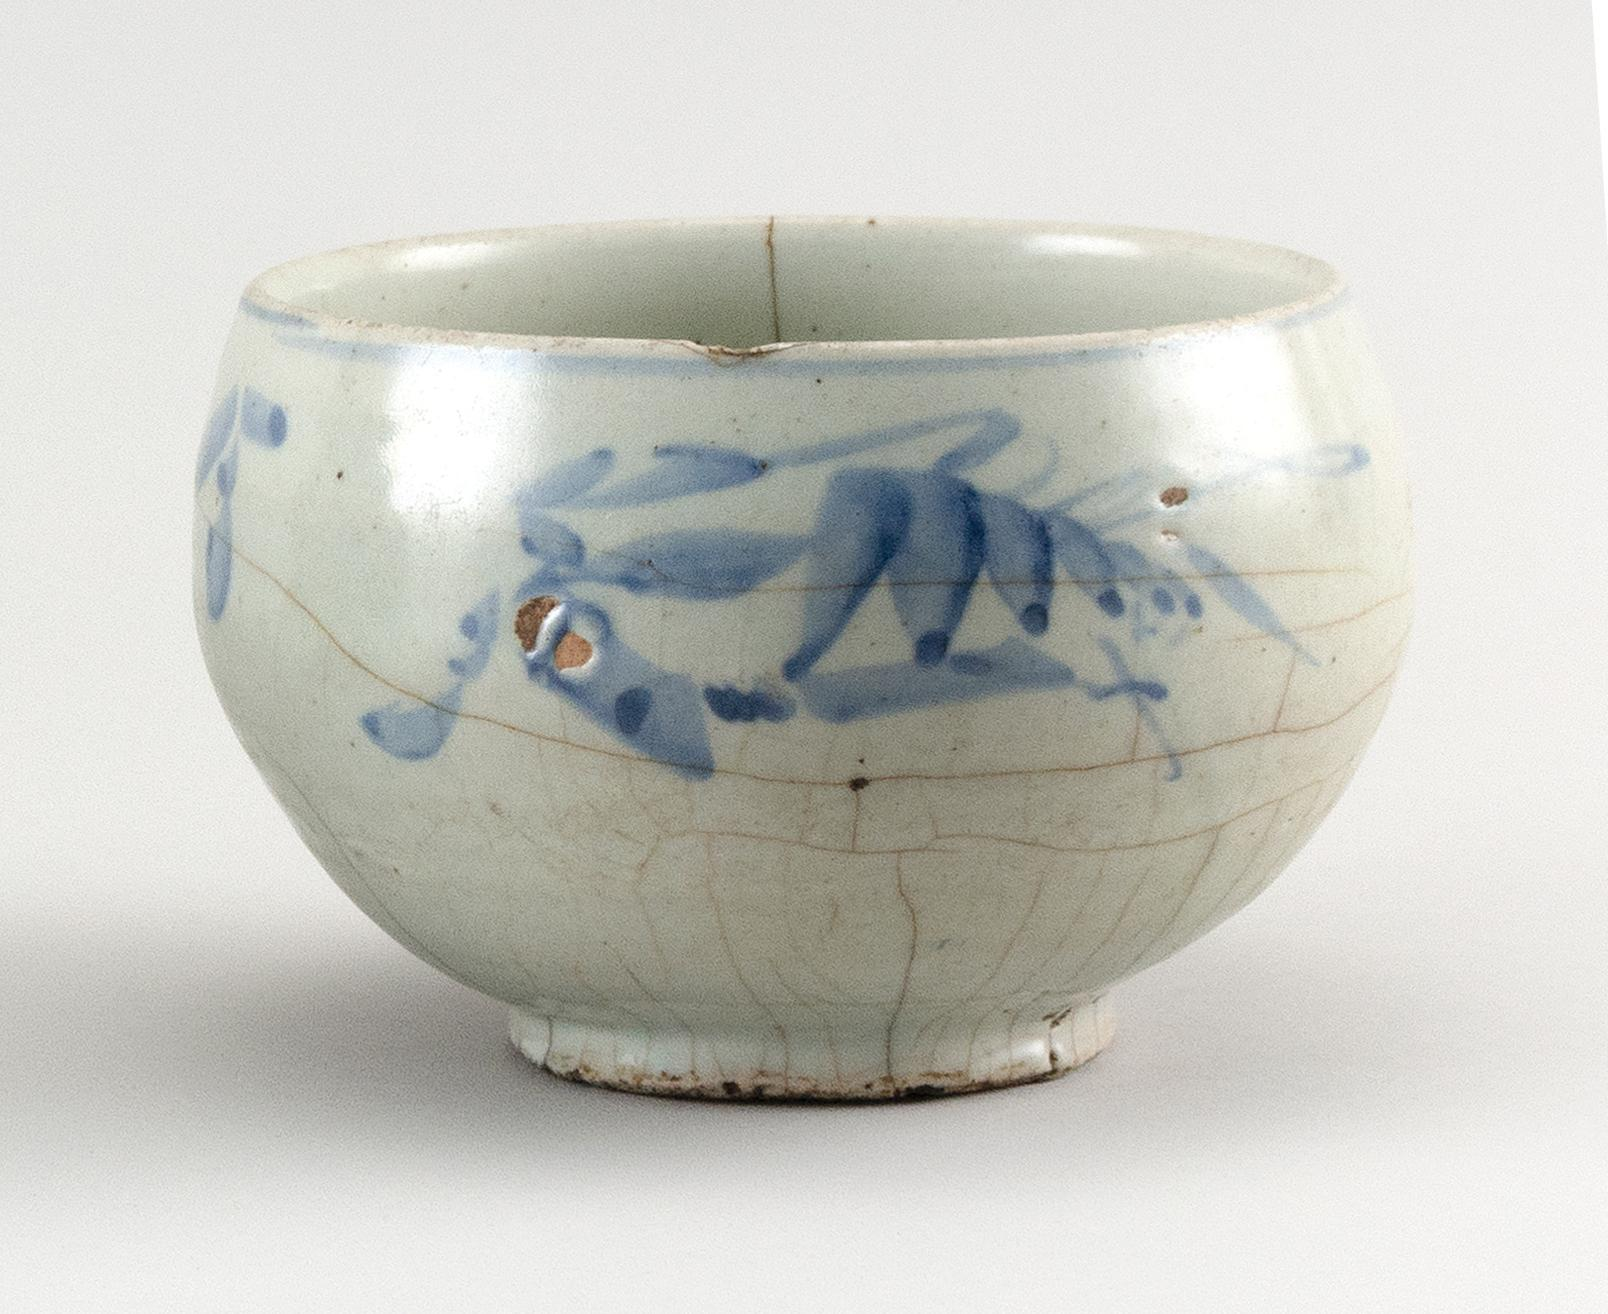 "KOREAN UNDERGLAZE BLUE AND WHITE PORCELAIN BOWL Blue floral sprays about the exterior. Height 4"". Diameter 5.5""."